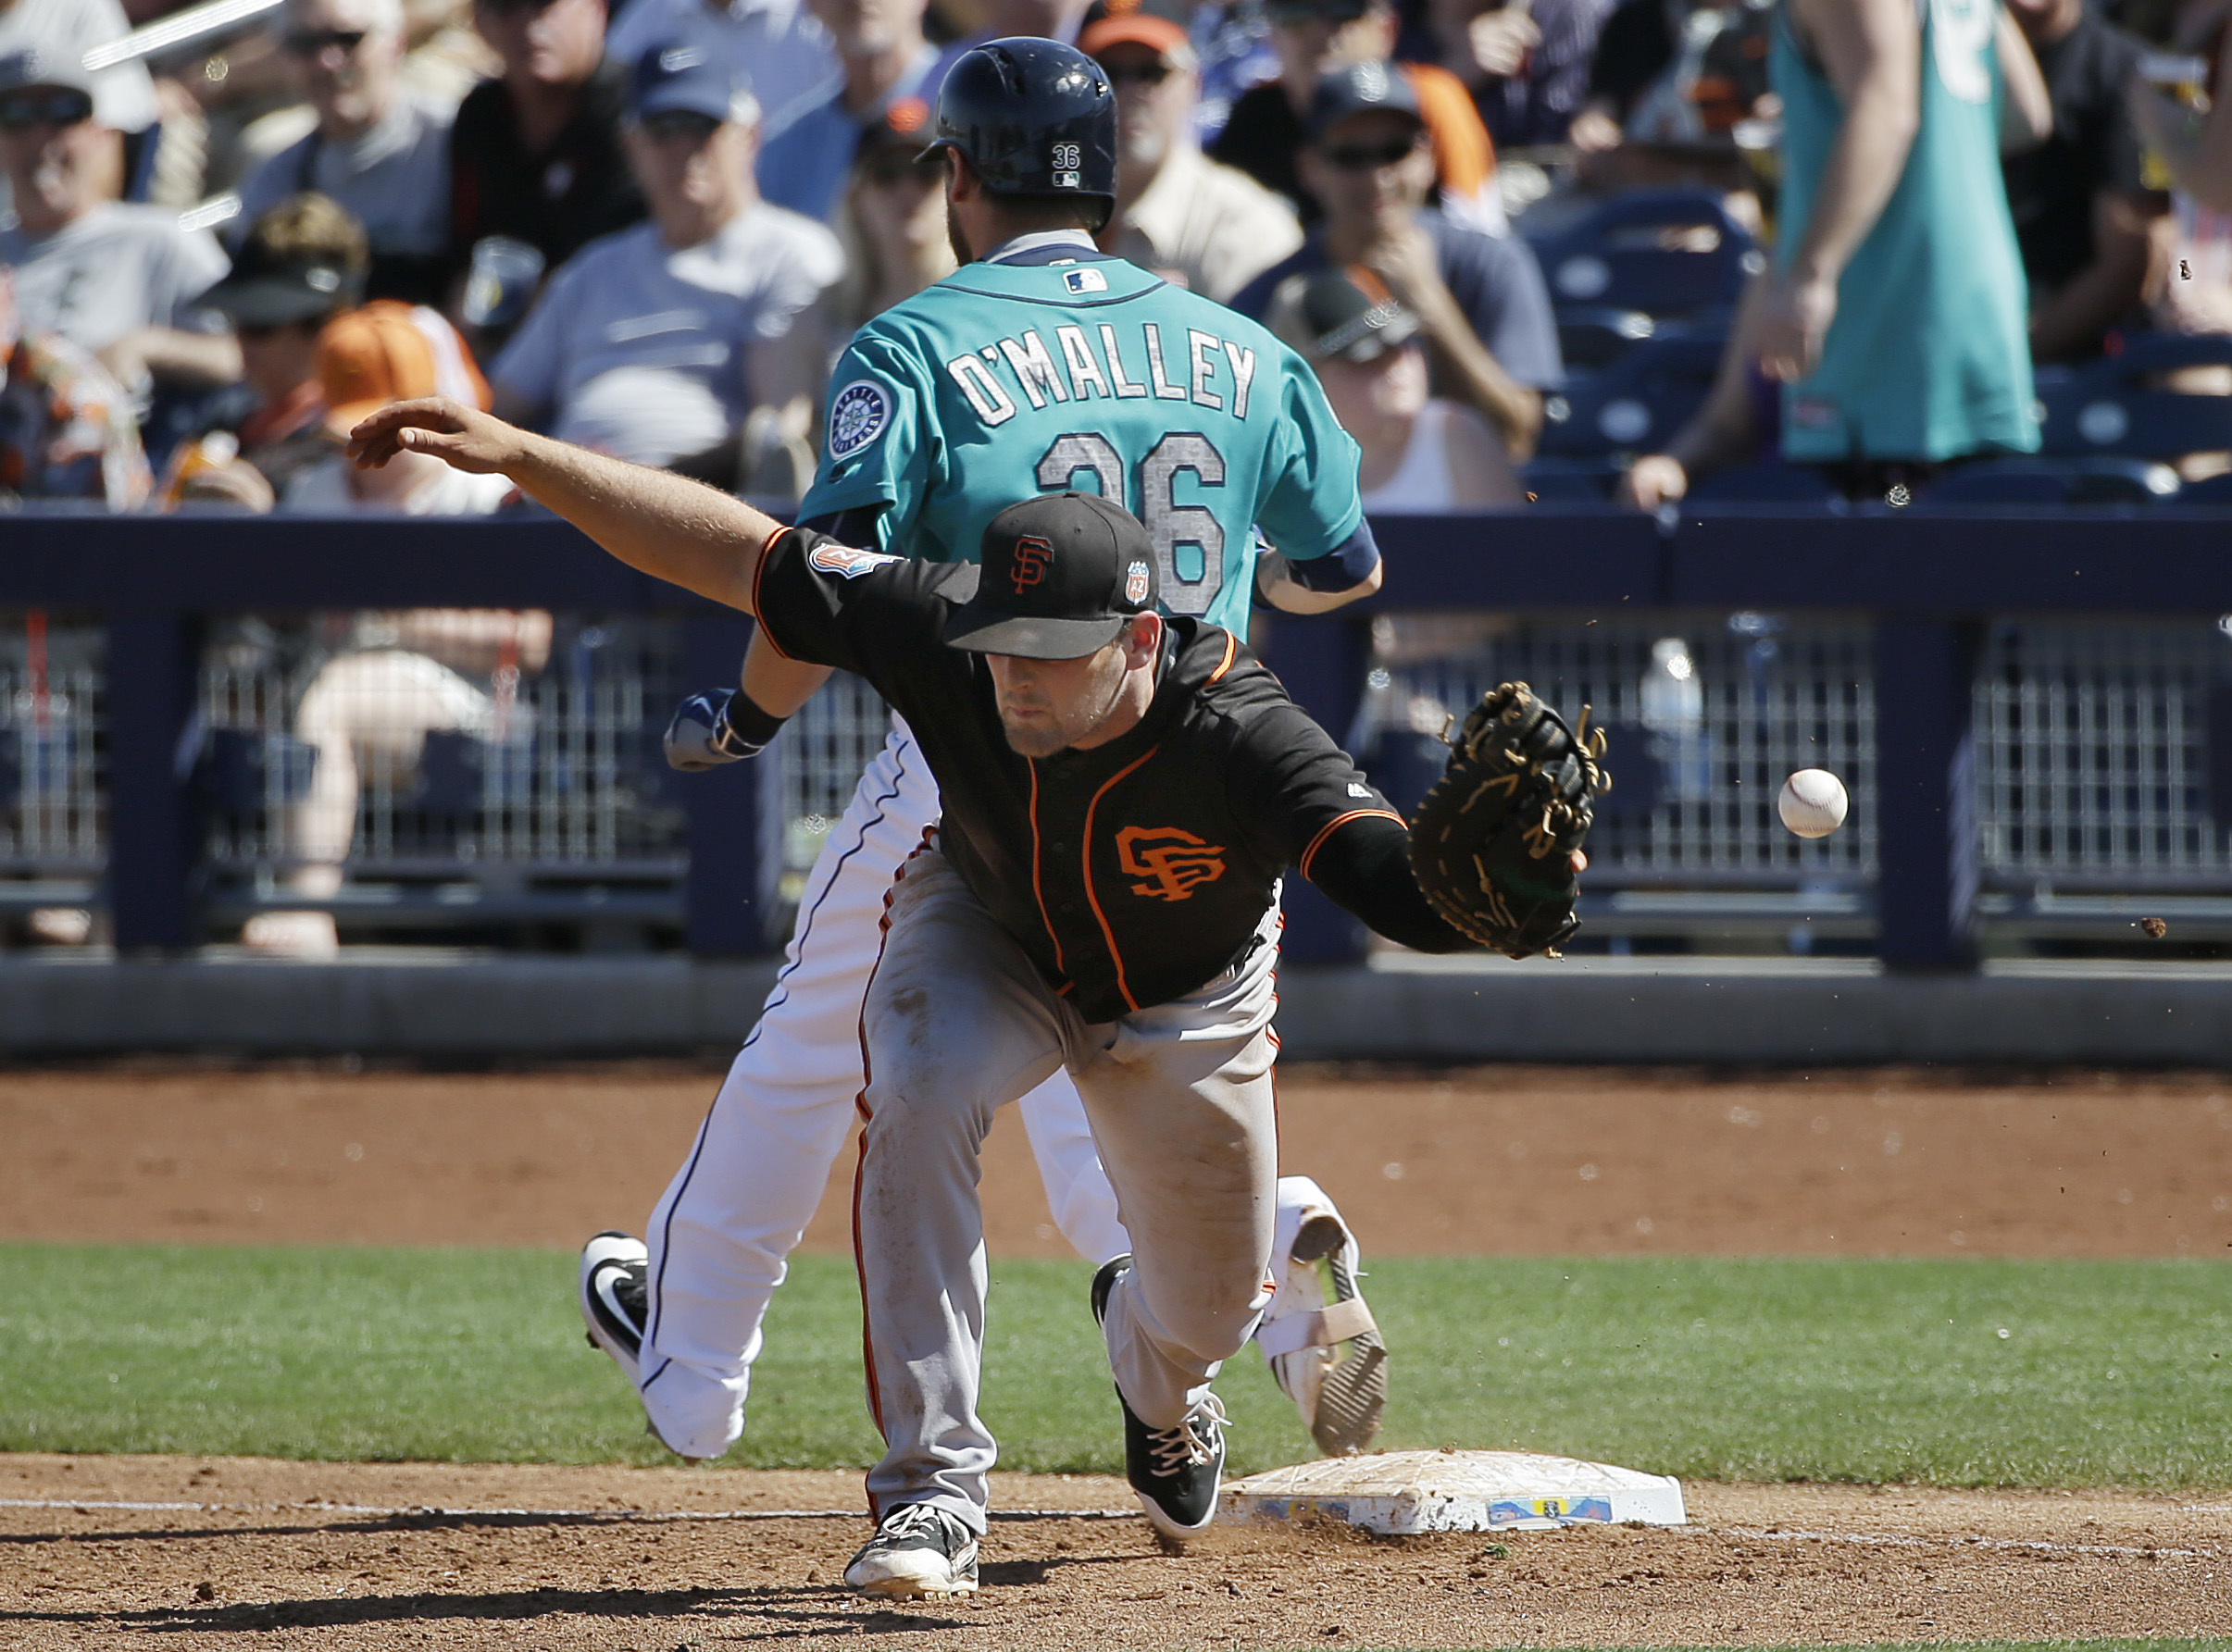 Seattle Mariners' Shawn O'Malley safely takes first base as San Francisco Giants first baseman Conor Gillaspie misses the throw from third baseman Kelby Tomlinson during the third inning of a spring training baseball game Wednesday, March 16, 2016, in Peo